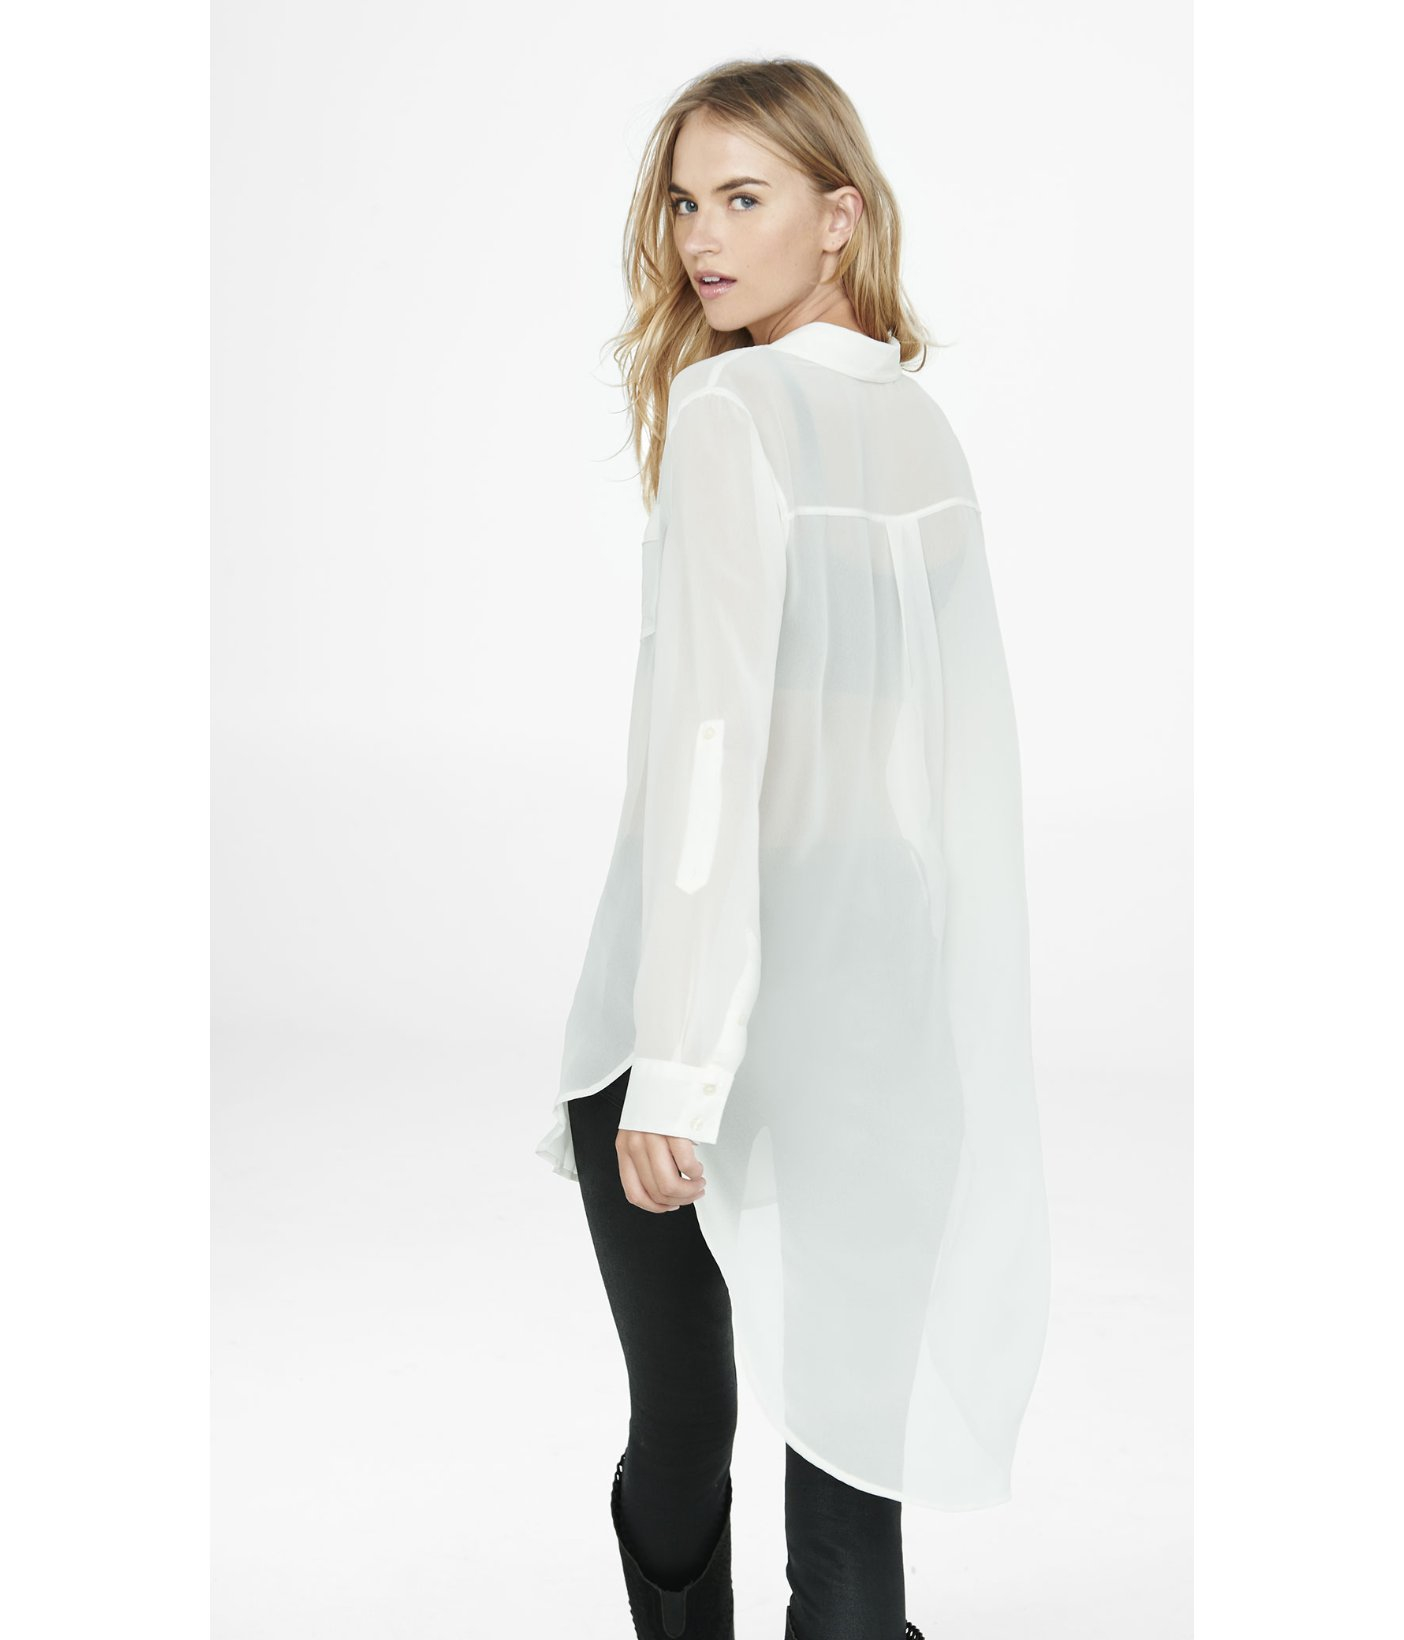 Express Sheer Chiffon Tunic Blouse in White | Lyst